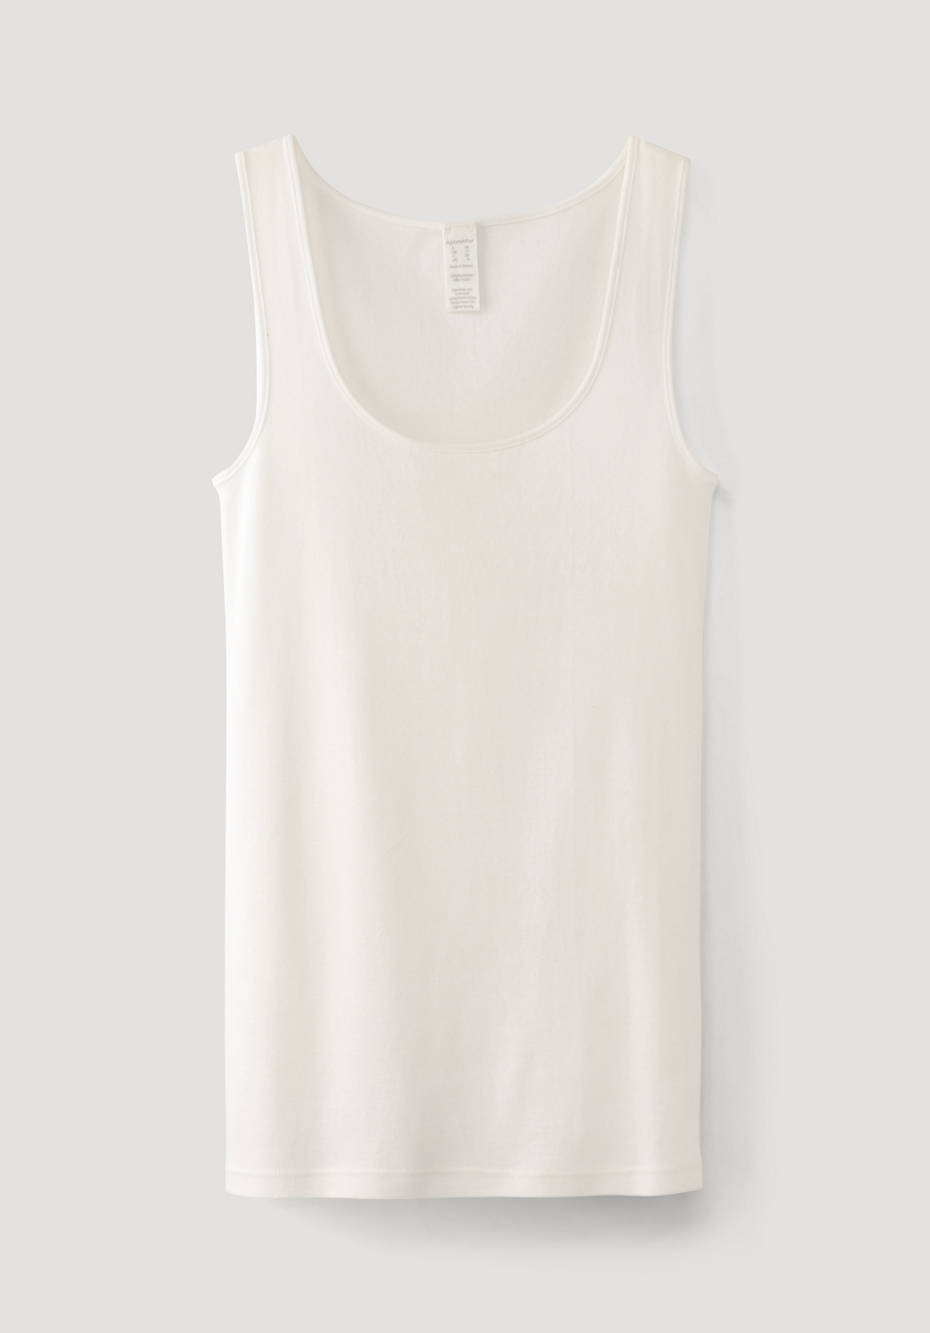 Top PureDAILY in a set of 2 made of pure organic cotton